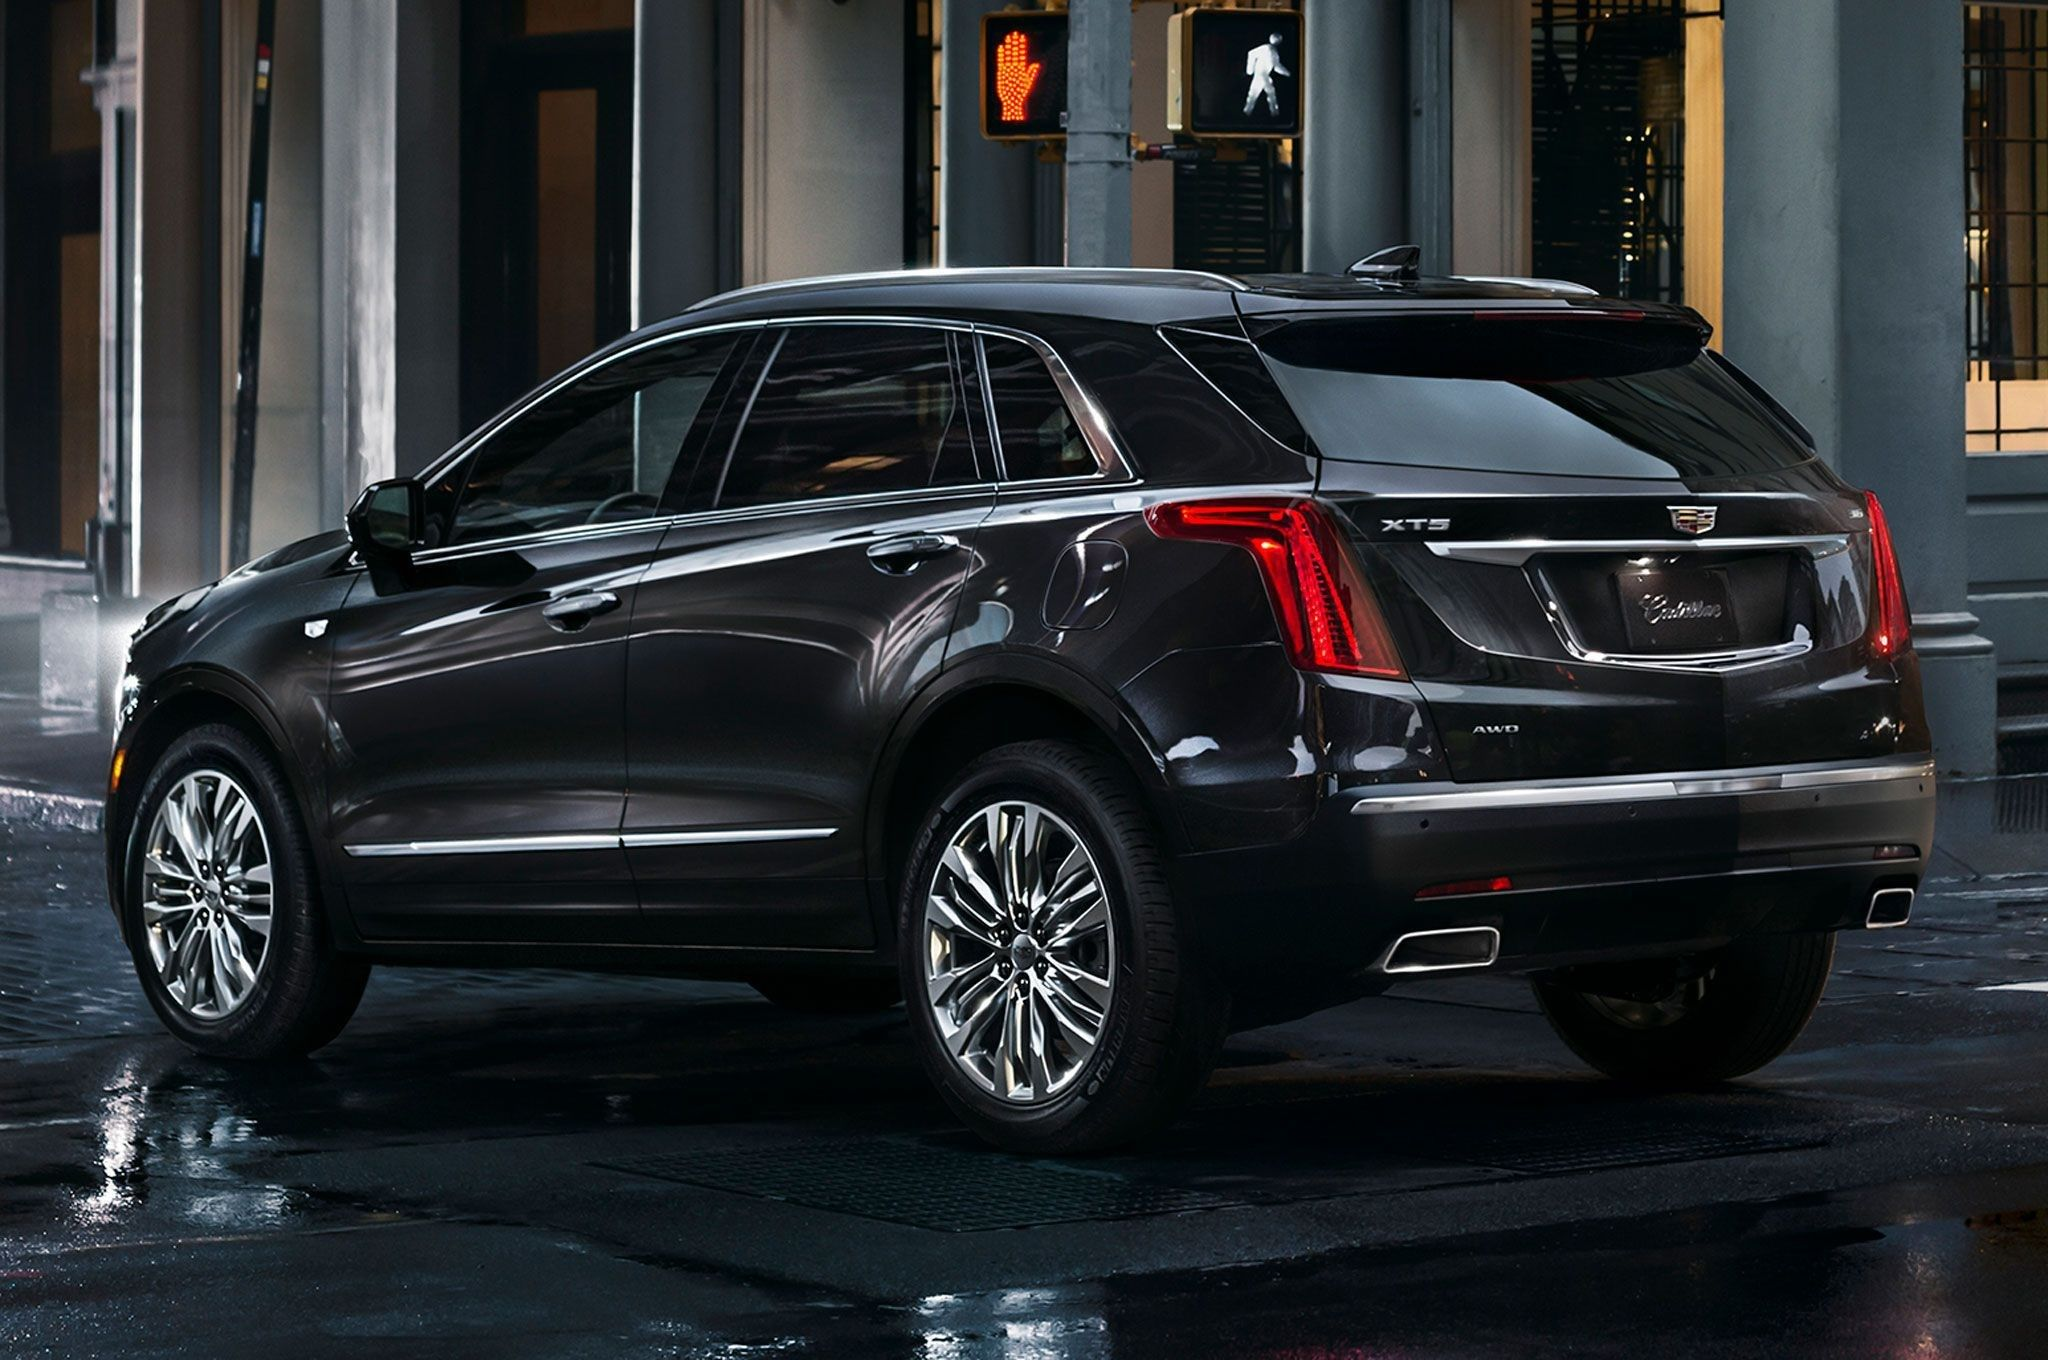 2018 cadillac midsize suv. simple 2018 cadillac in 2018 cadillac midsize suv